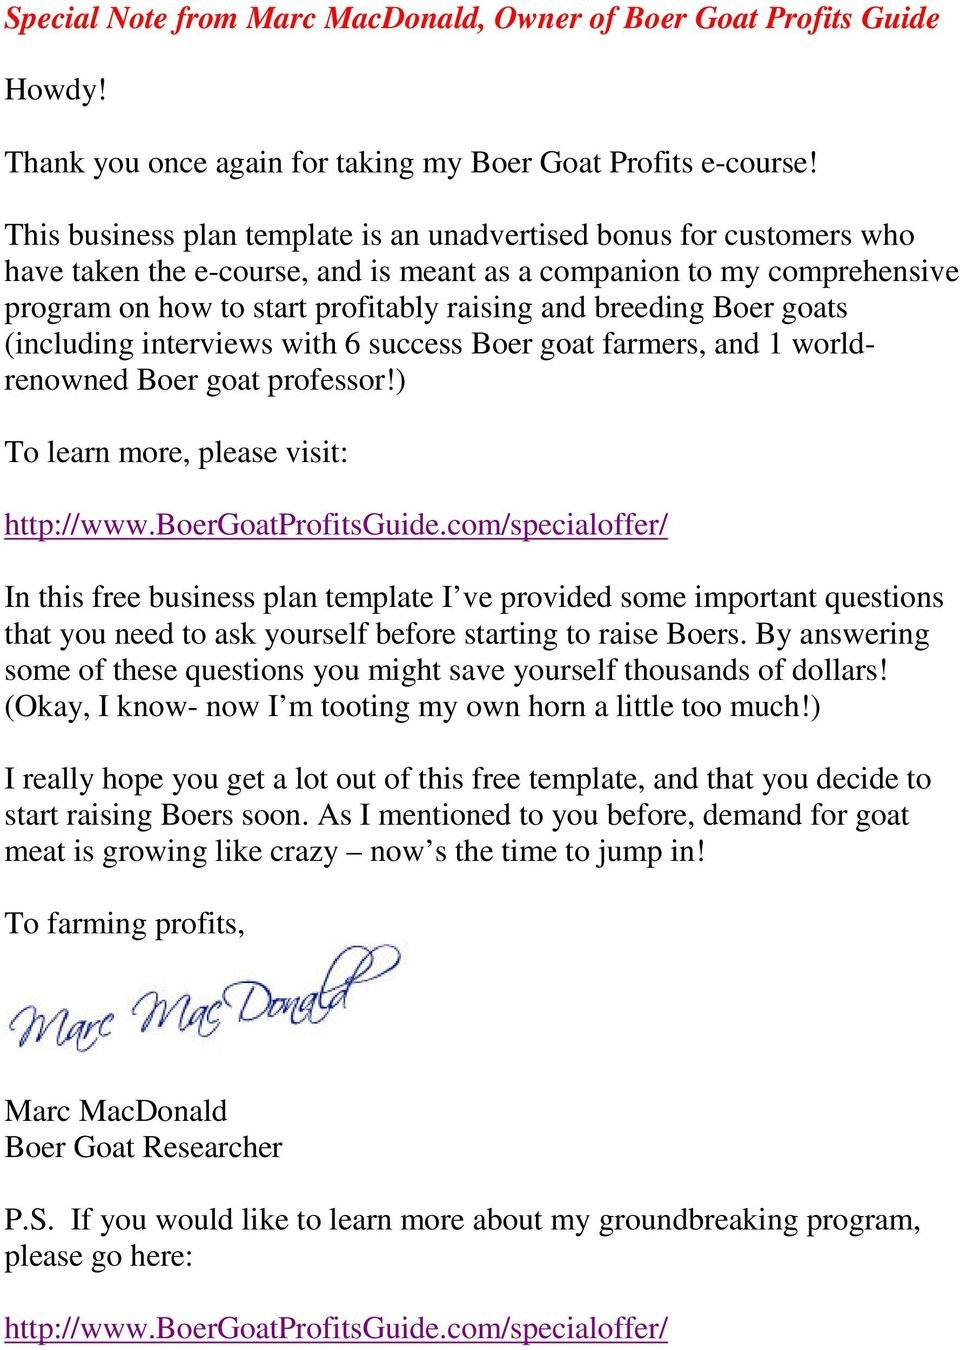 Special Note from Marc MacDonald, Owner of Boer Goat Profits